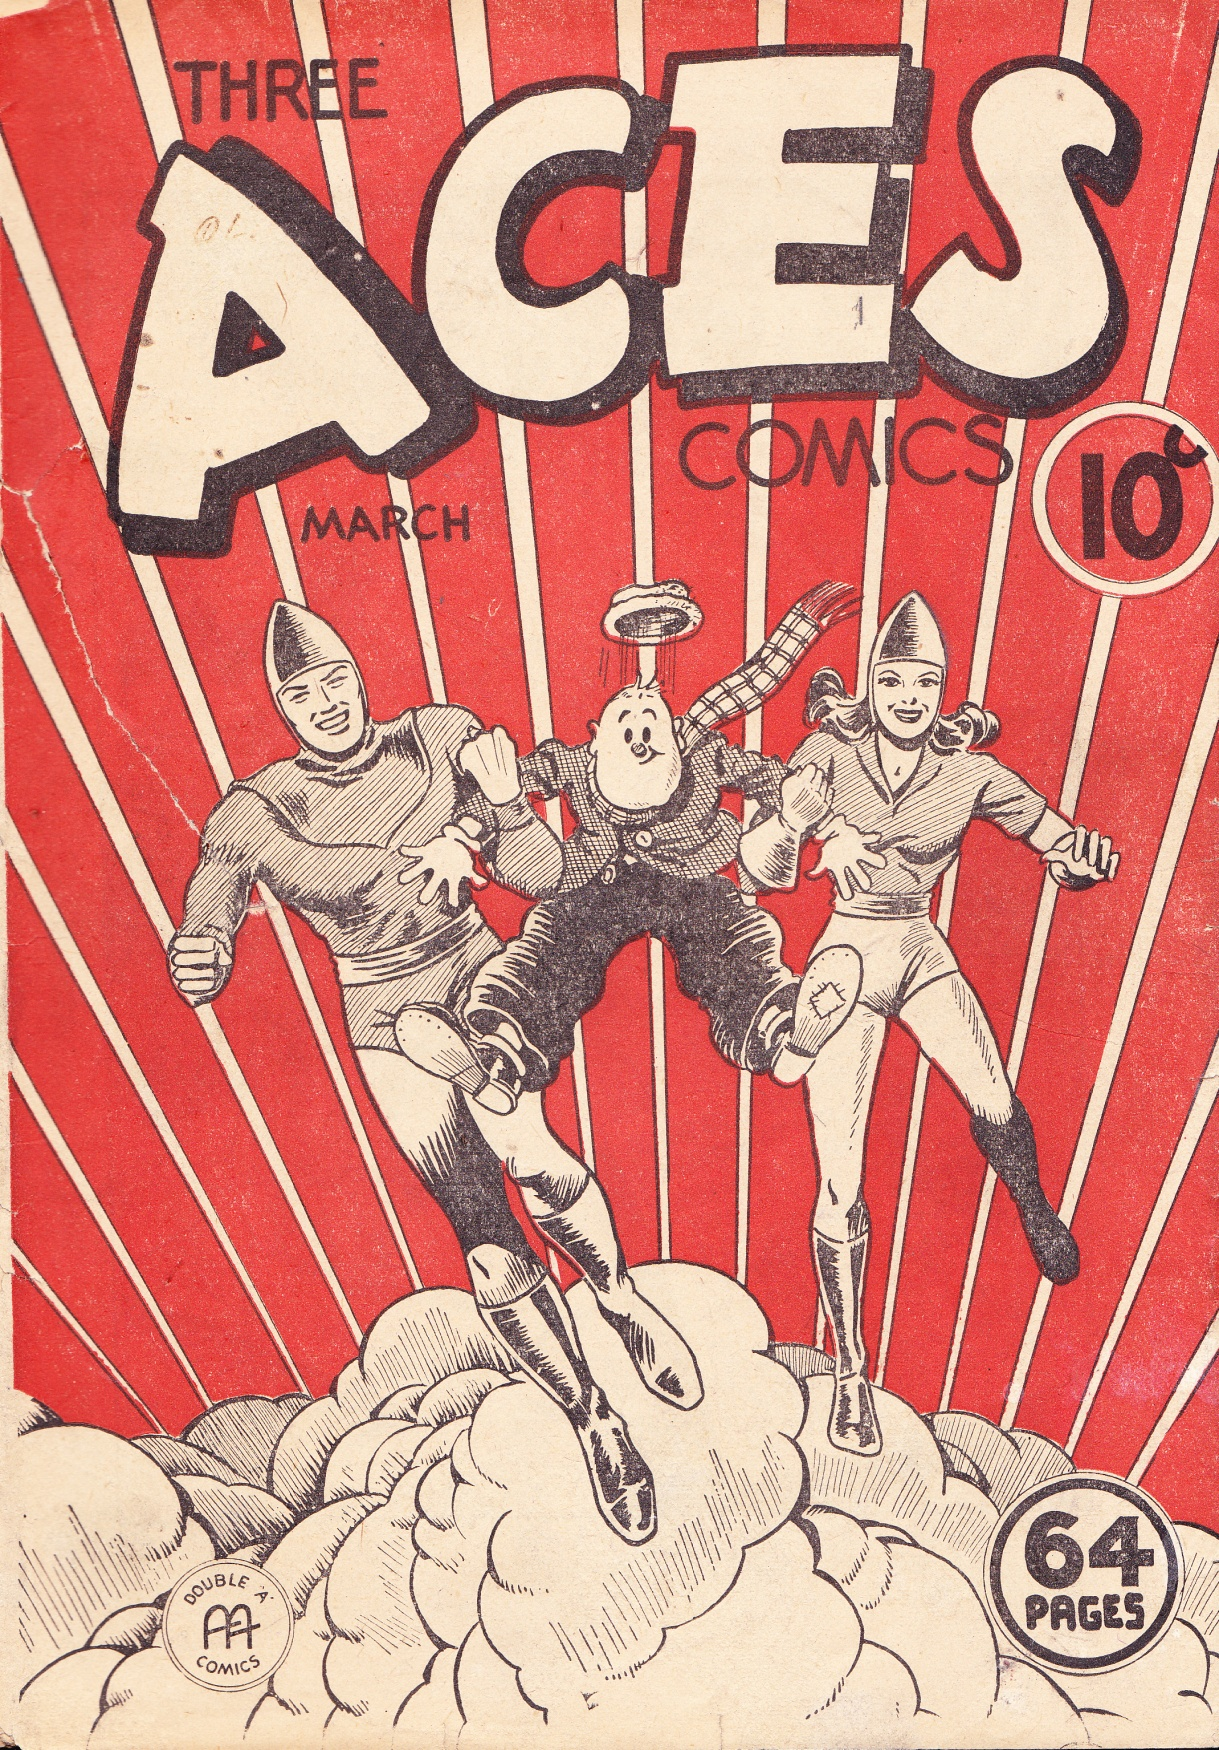 C:\Users\Robert\Documents\CARTOONING ILLUSTRATION ANIMATION\IMAGE CARTOON\IMAGE CARTOON S\SOOPER DOOPER, Three Aces Comics 2-2, March 1941, fc.jpg